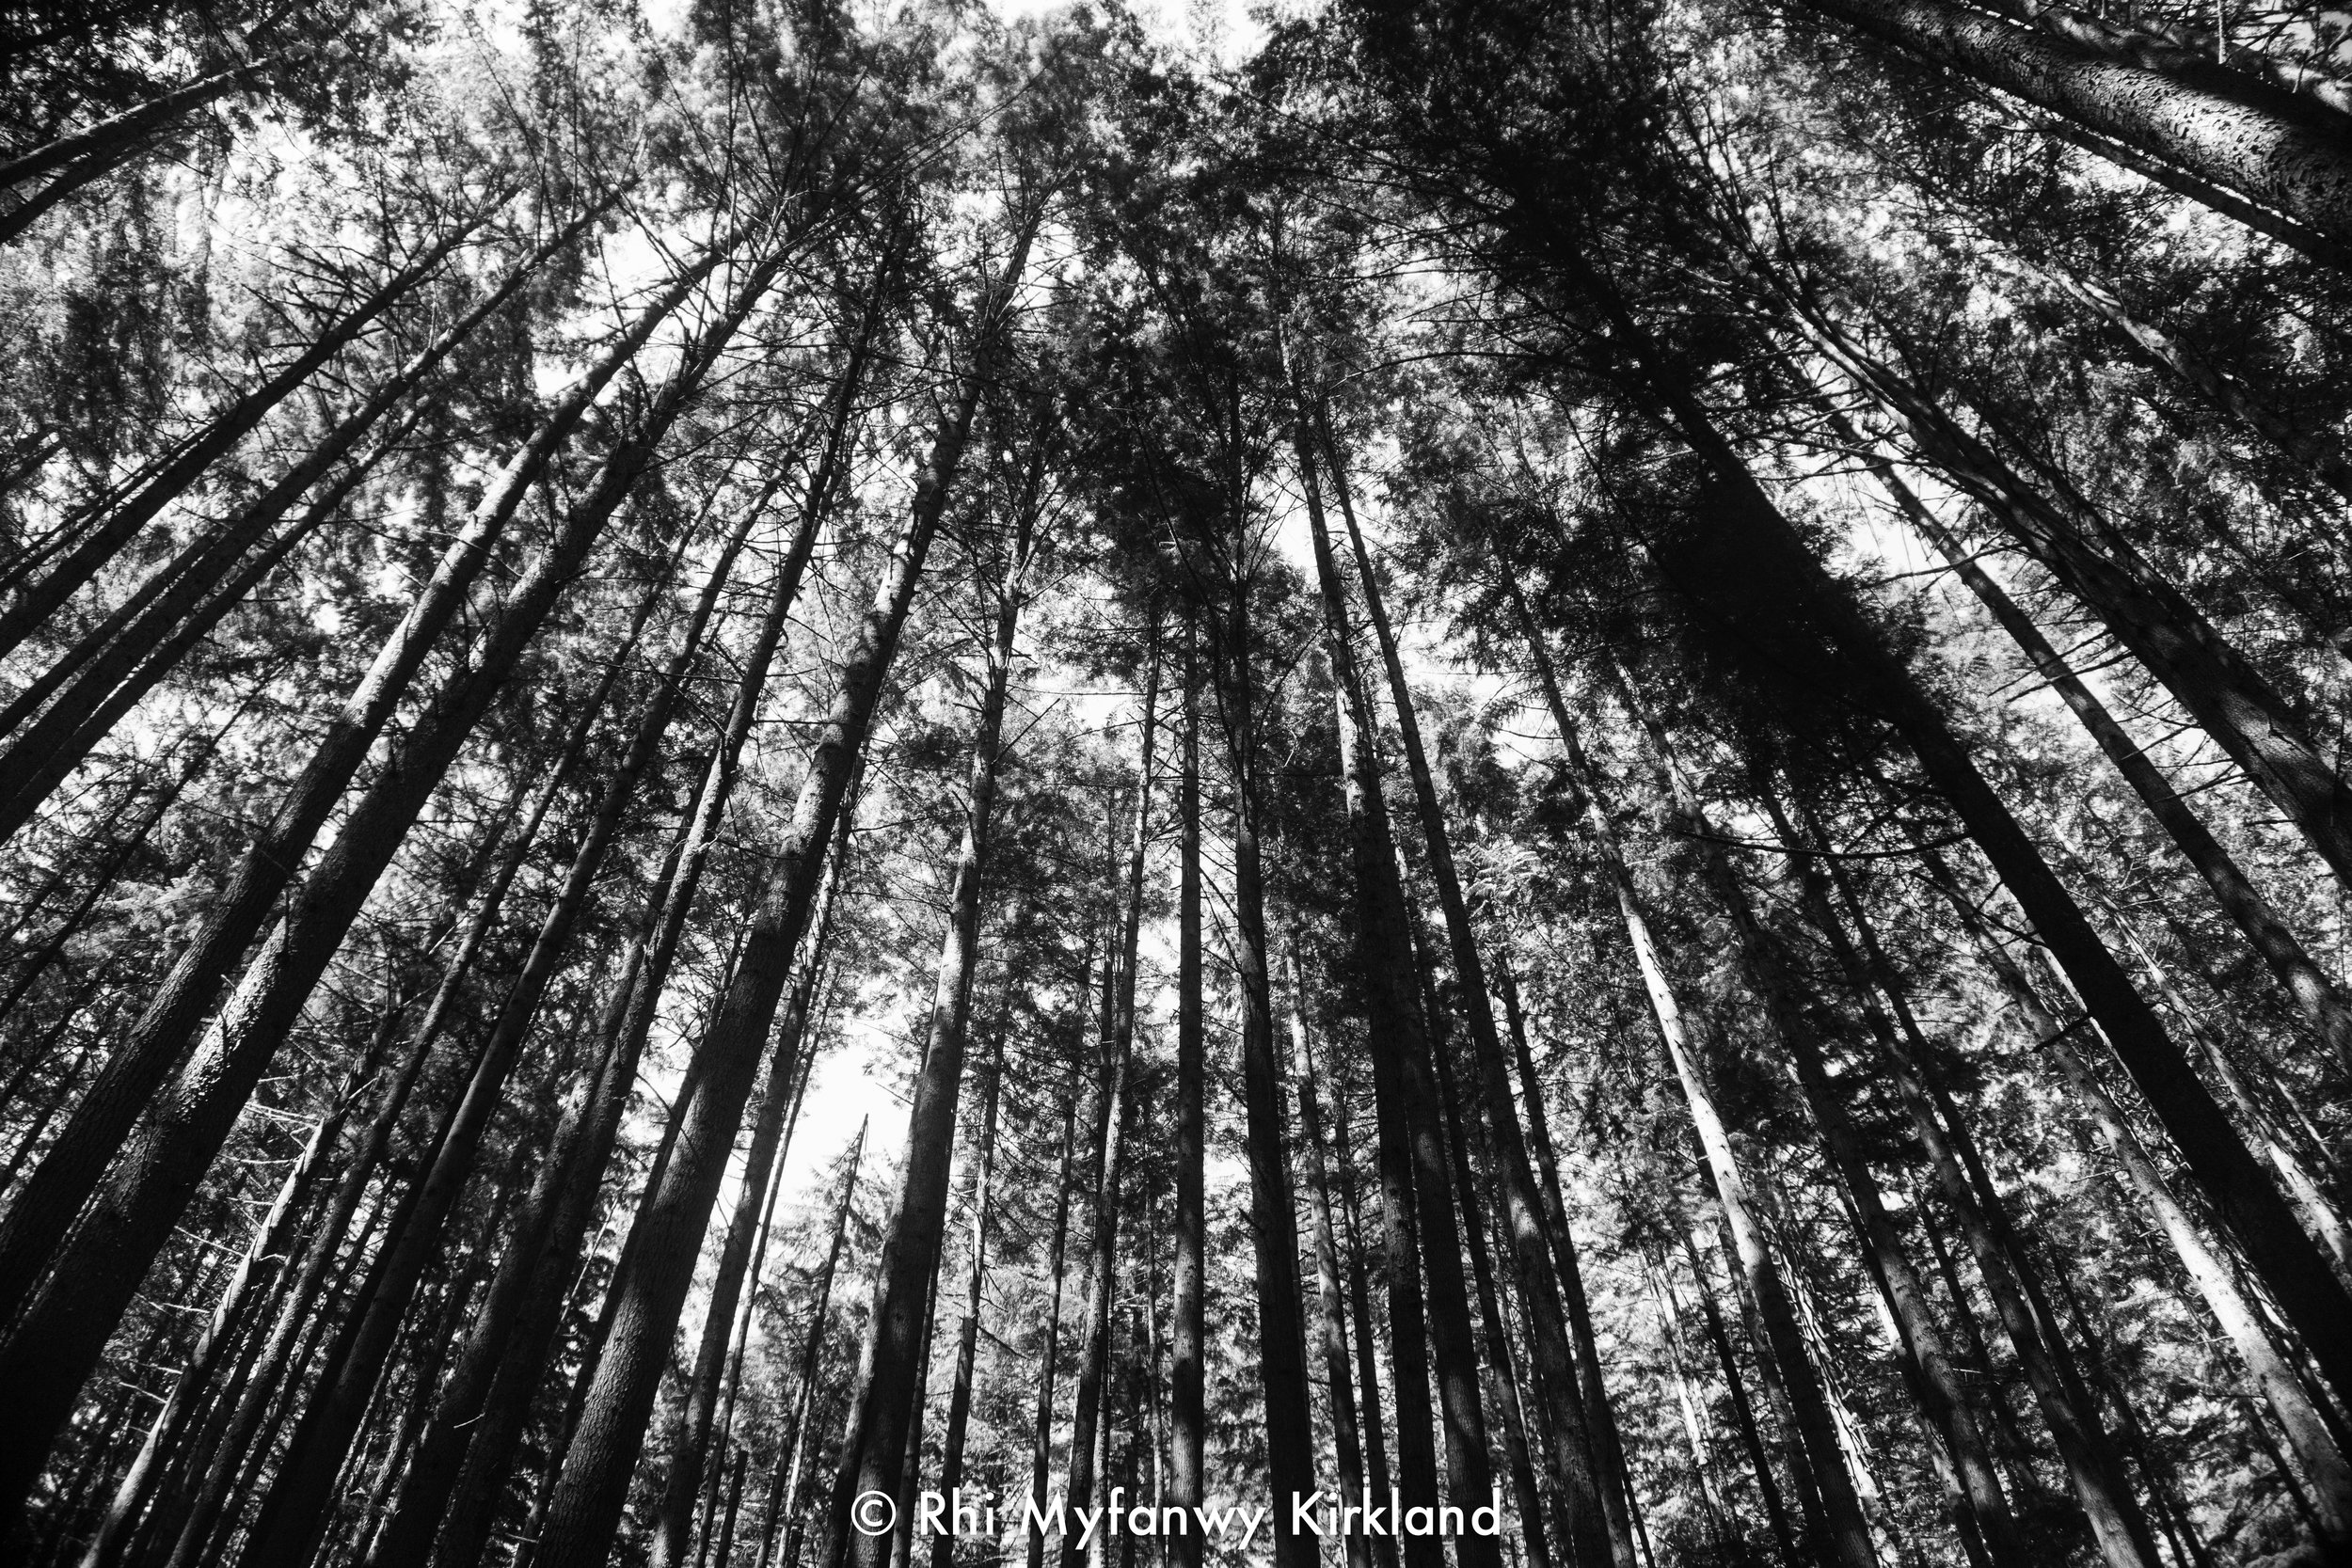 2018.07.13 trees bw watermark-7.jpg